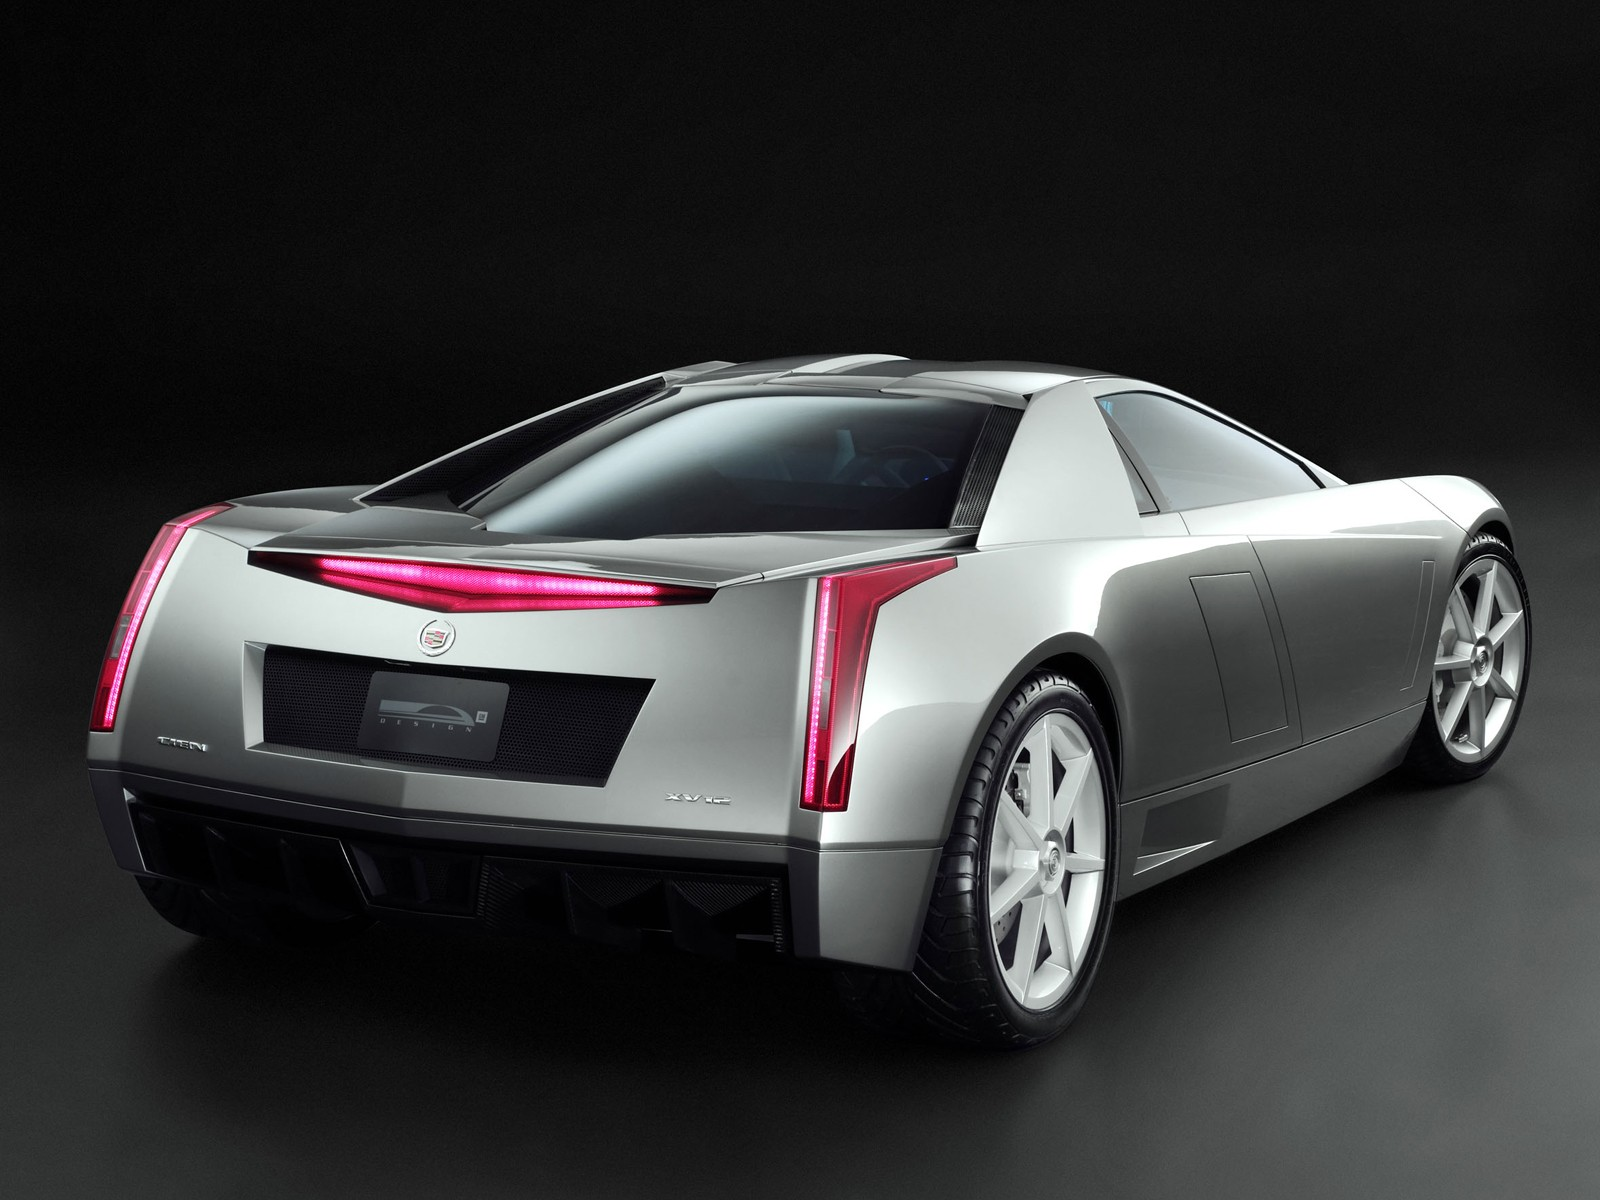 2002 Cadillac Cien concept car: source